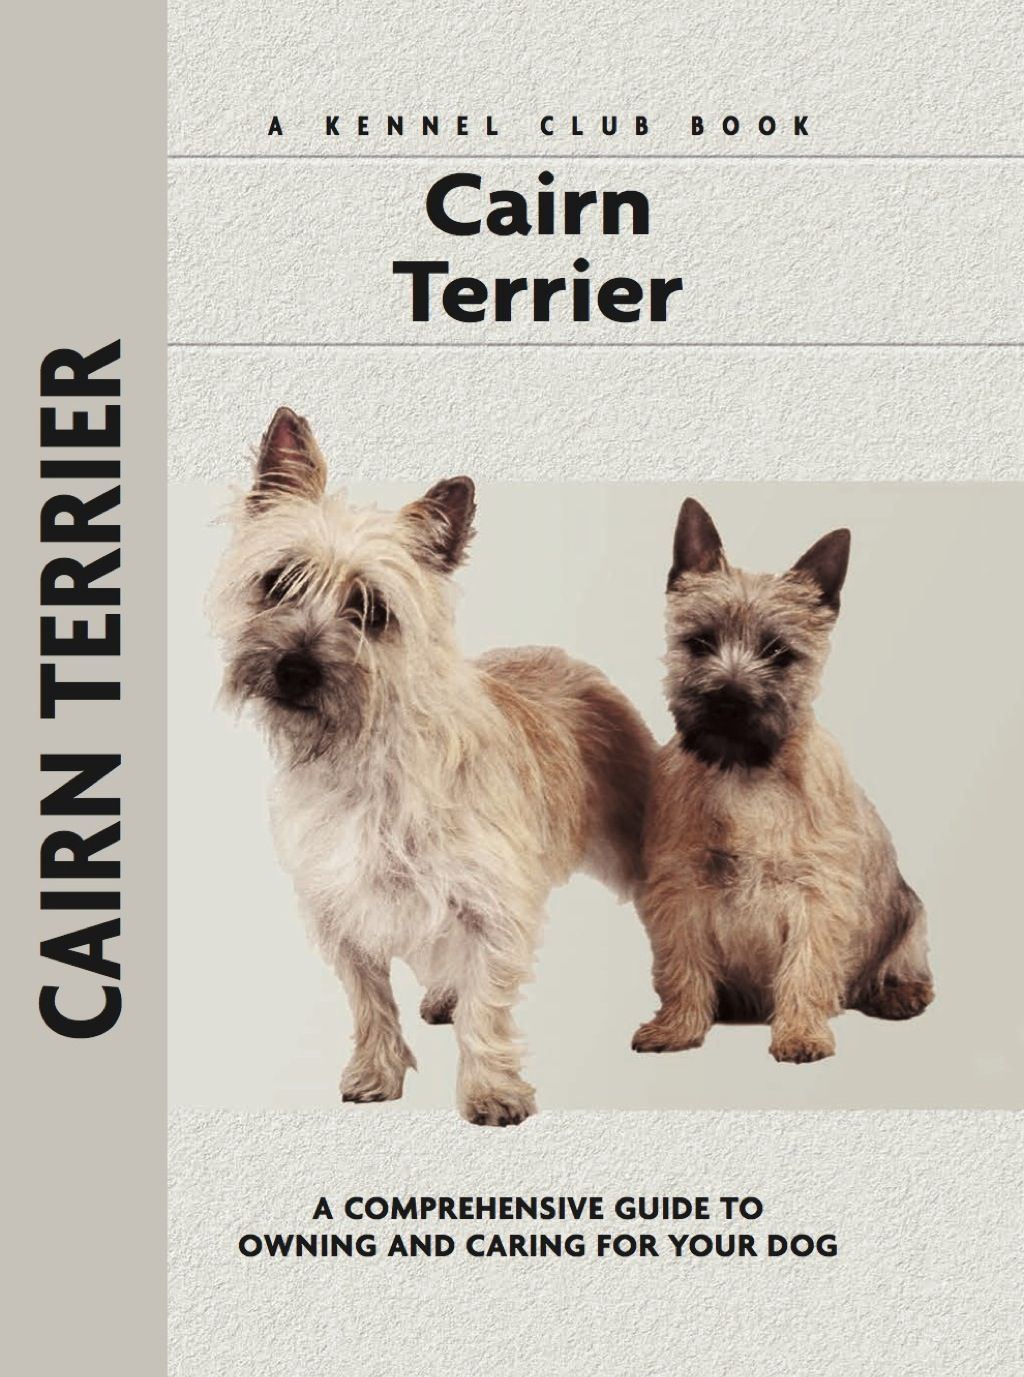 Cairn Terrier Ebook Cairn Terrier Terrier Irish Terrier